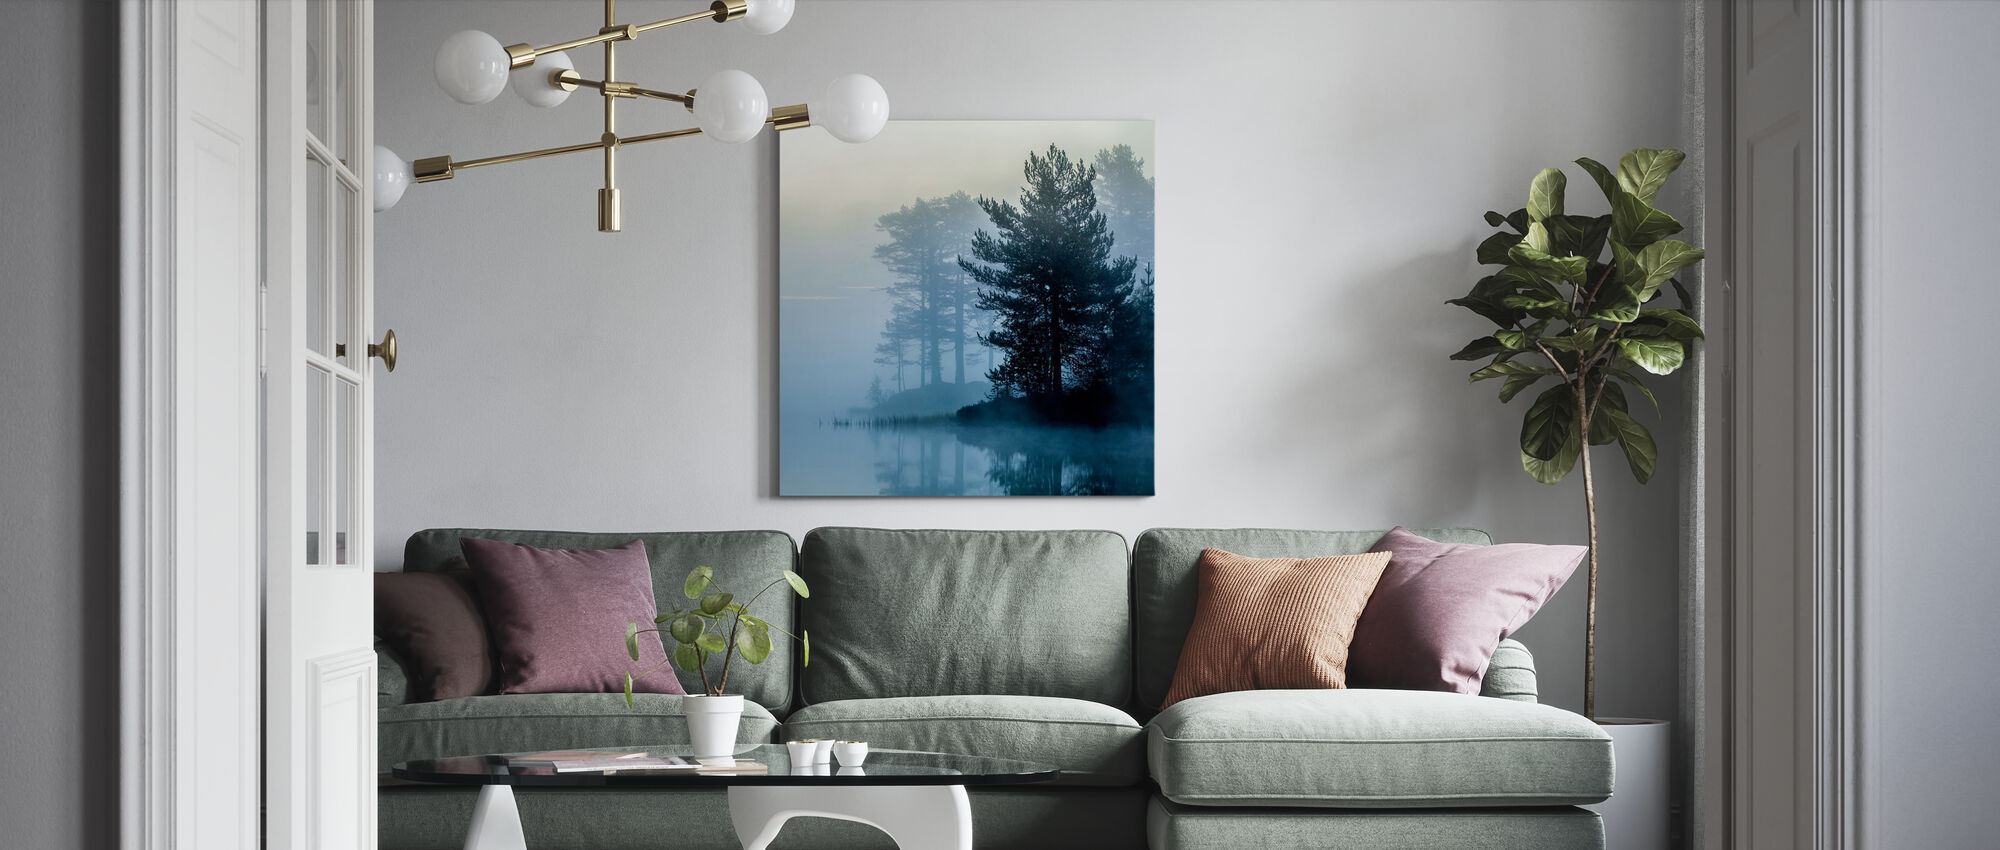 One Early Misty Morning - Canvas print - Living Room